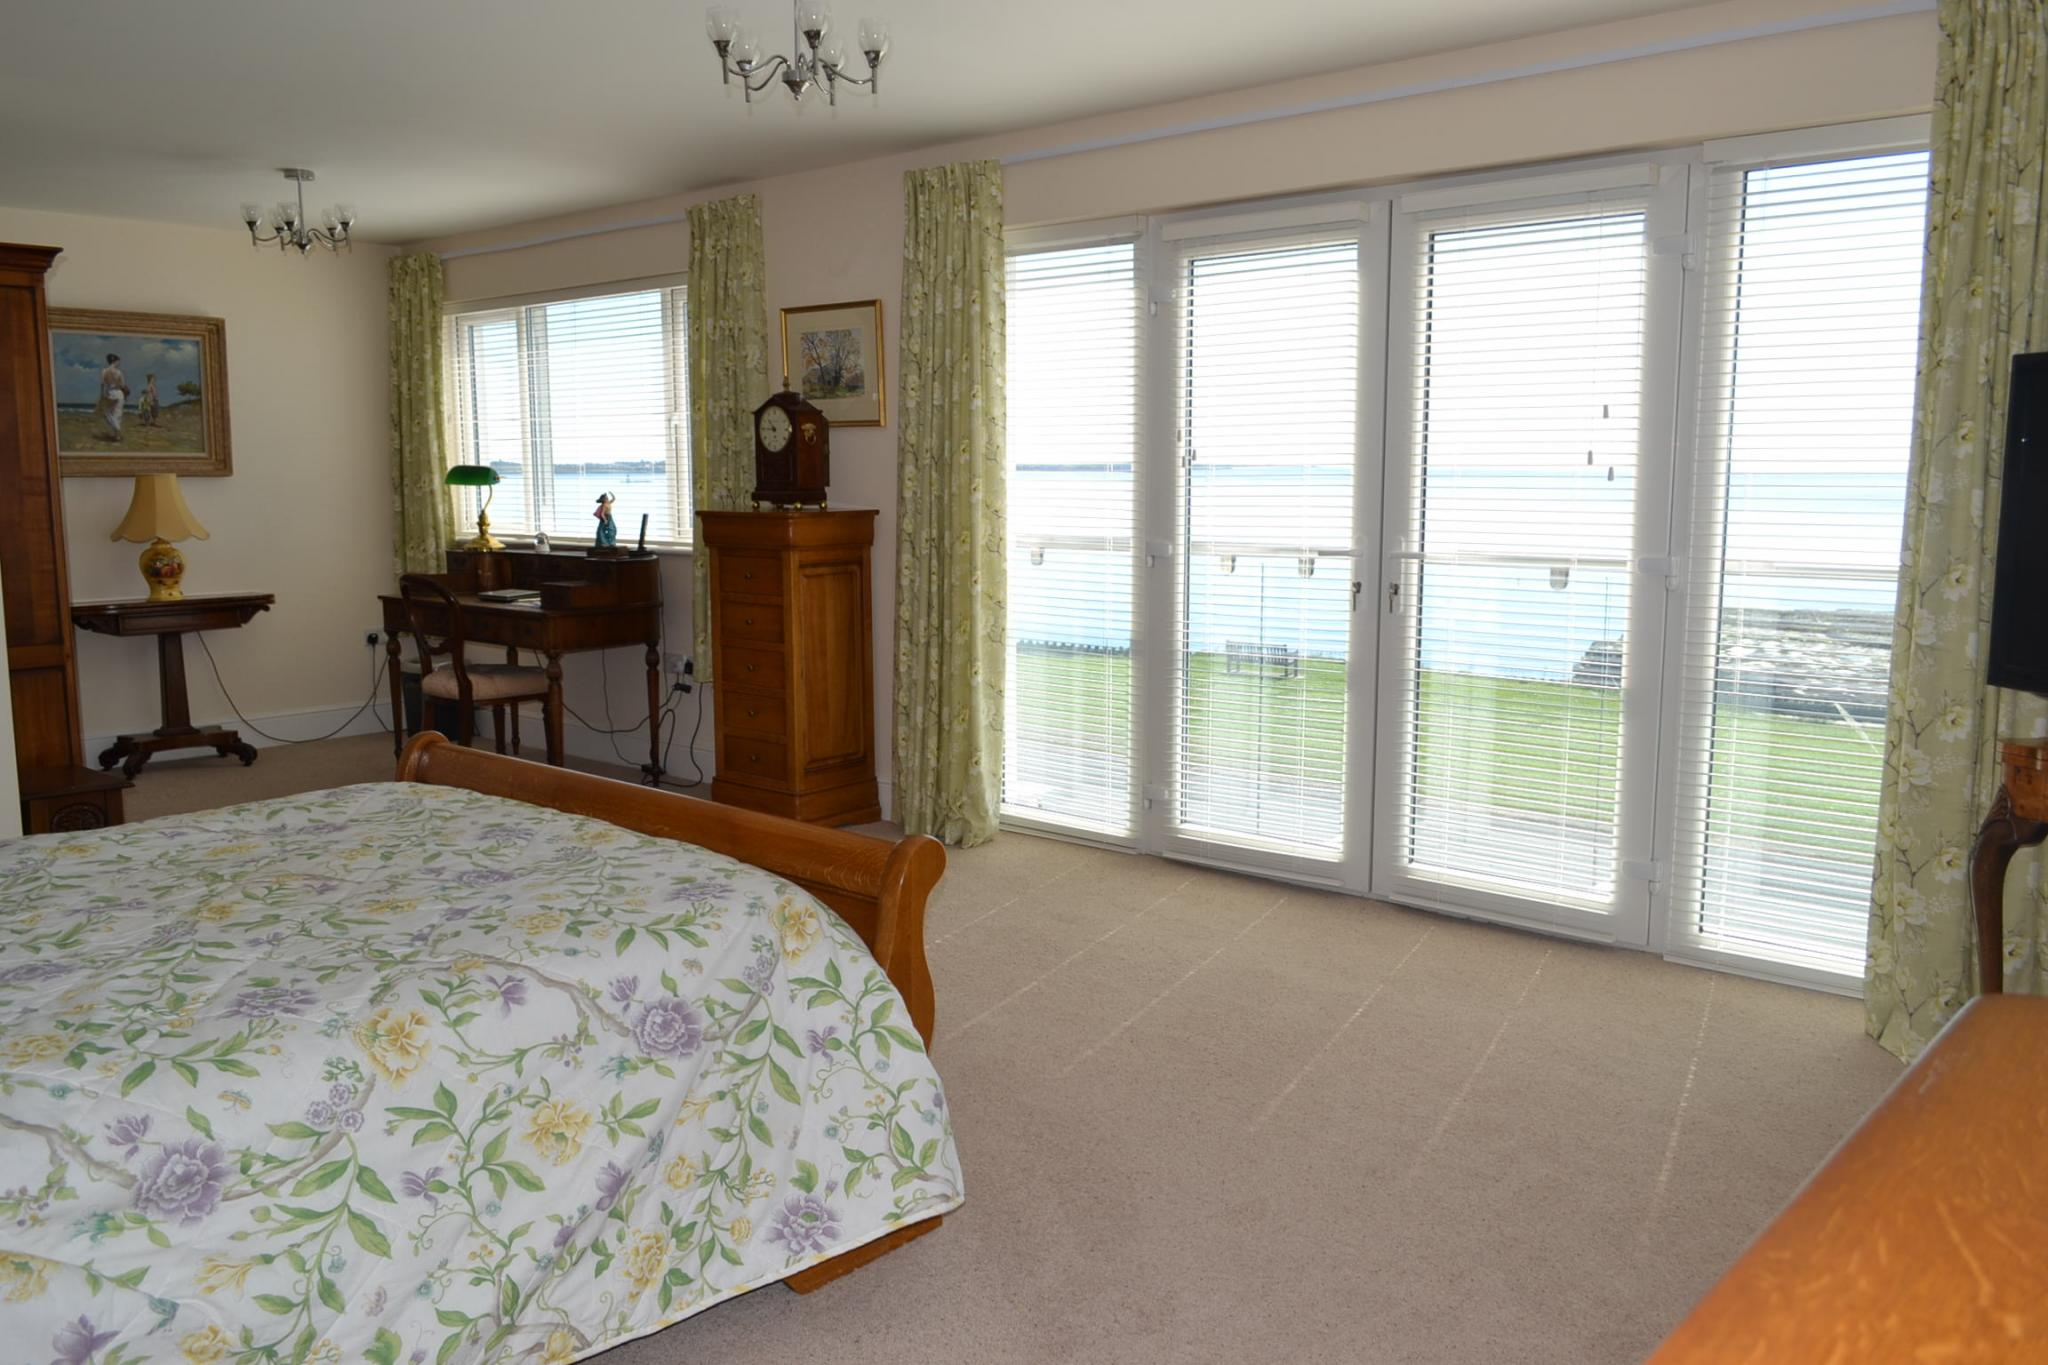 5 bedroom detached house For Sale in Port St Mary - Photograph 16